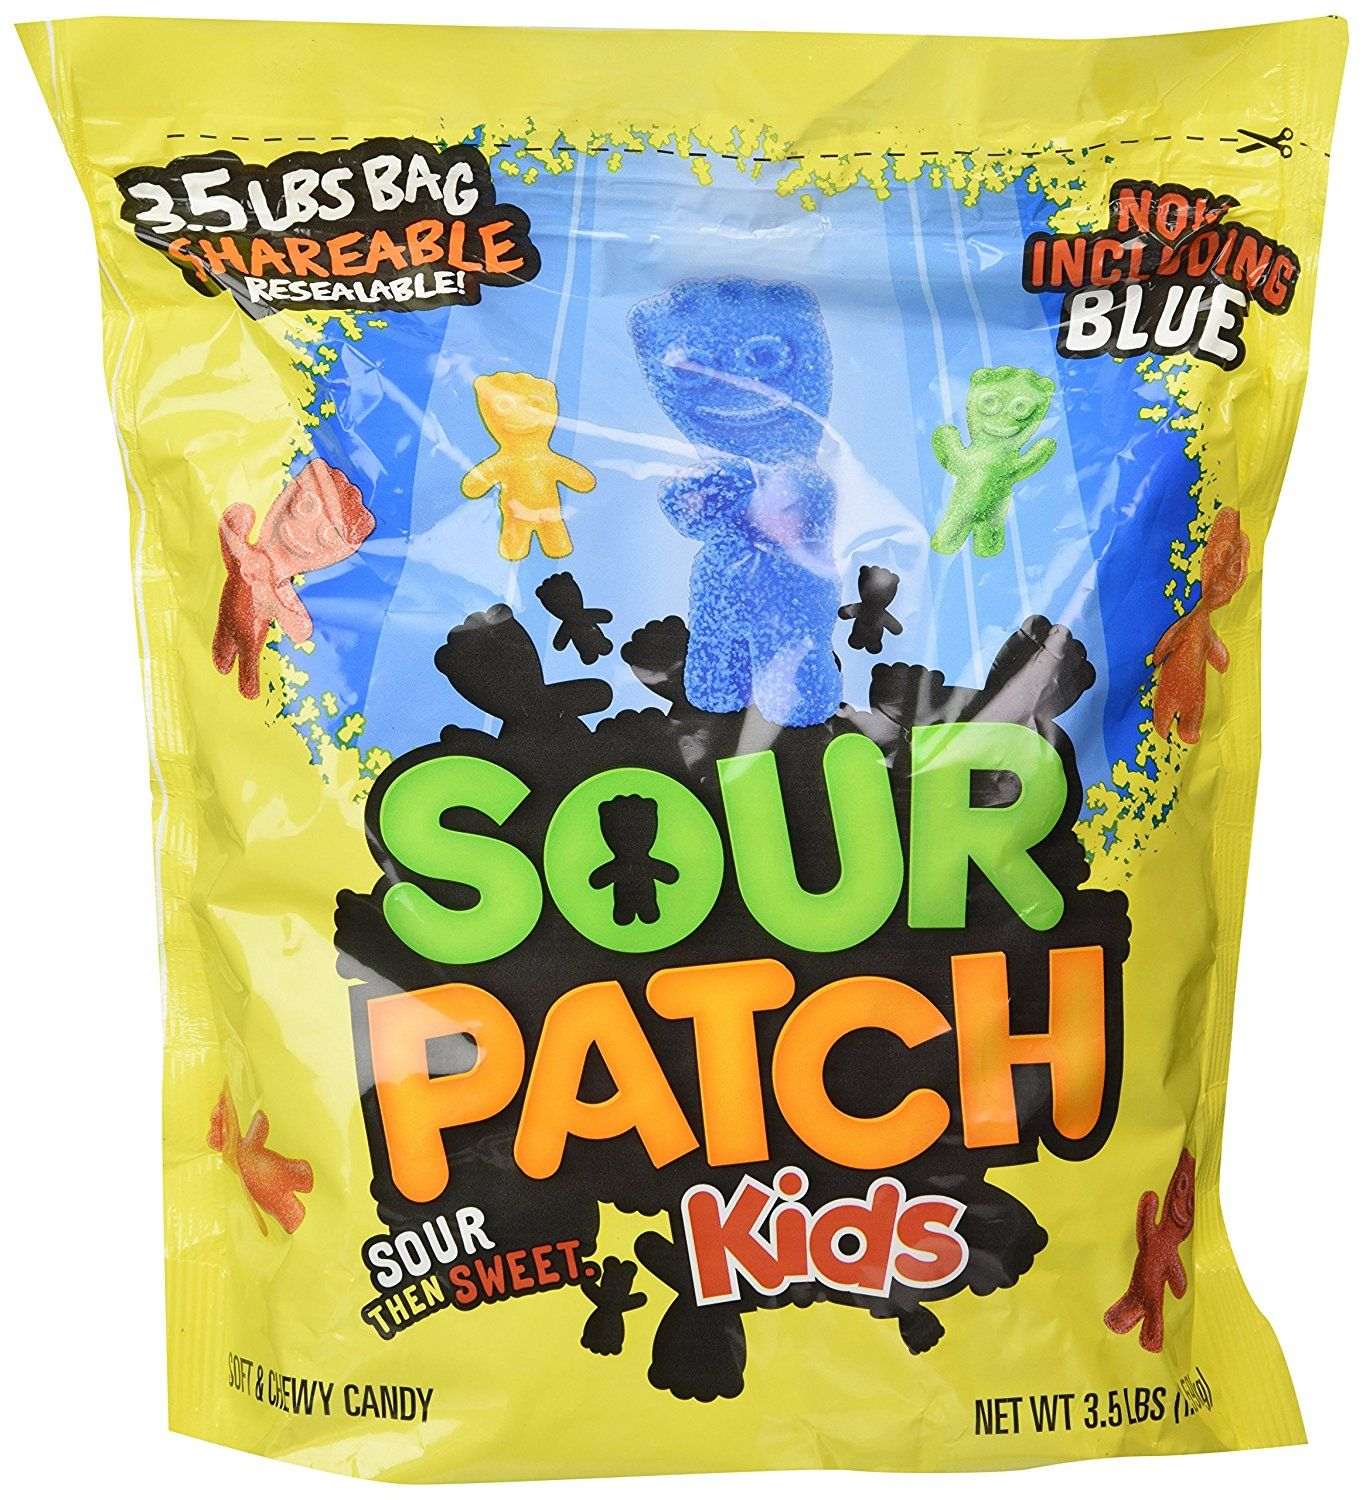 Sour Patch Kids Candy Original 3 5 Pound Bag See It Now It S A Great Product Fresh Groceries Sour Patch Kids Sour Patch Kids Candy